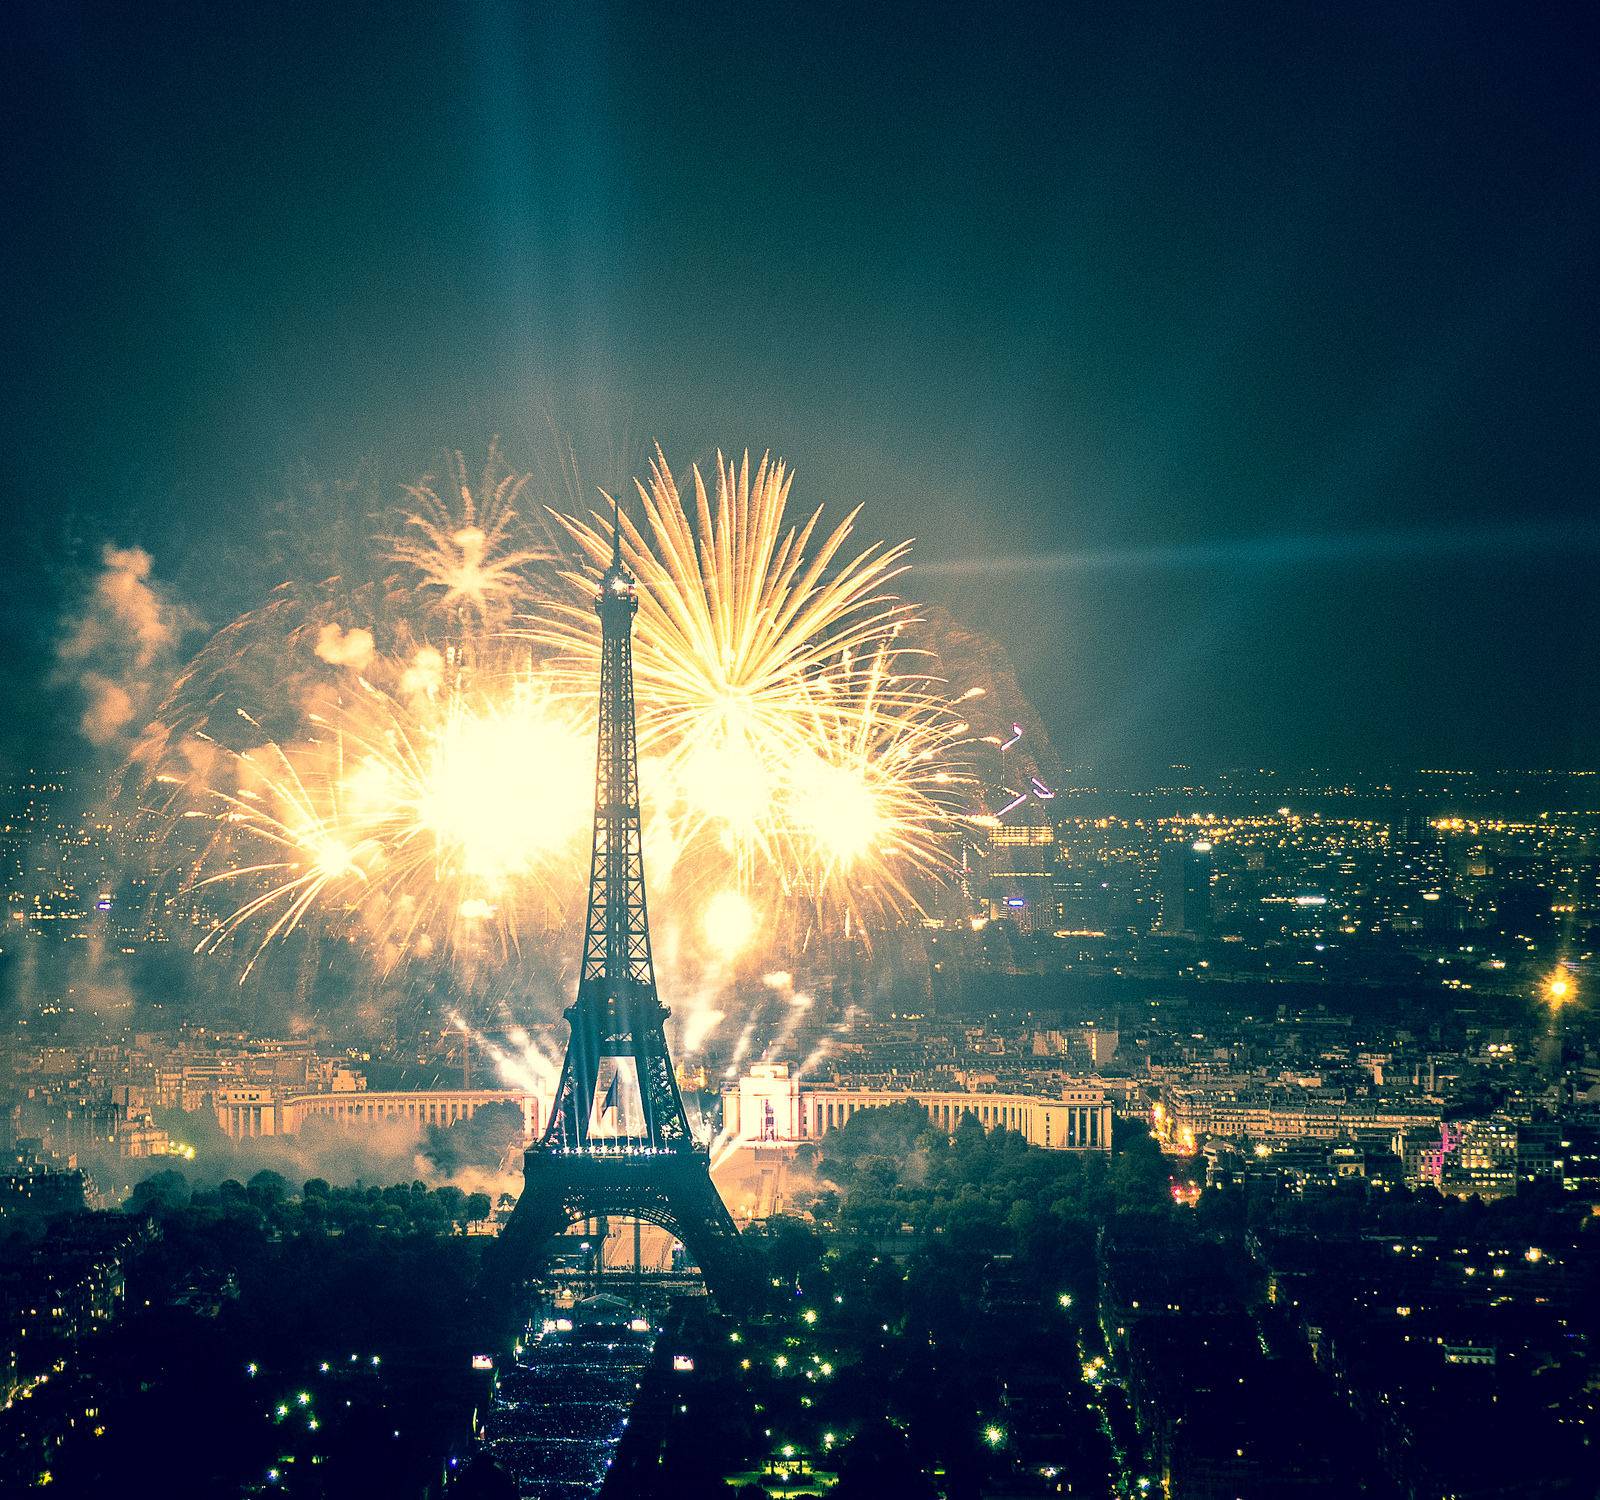 New Year's Eve - Good riddance 2018. Join us at La Jambe for TWO ball drops!6pm: Ring in the new year on Paris time, as we project live French TV and celebrate early. Great for nostalgic French people, partygoers who want to say goodbye to 2018 TWICE, or folks that don't want to stay up until midnight. Doors open at 4pmMidnight: Starting at 9pm, we'll be offering all-you-can-drink French Crémant until we run out. We'll be keeping things fancy with some delicious holiday French specialities, and fun with a photo booth, decor, music and more surprises. No advanced tickets required, but table reservations are welcome!*We will not be requiring a deposit or credit card info for reservations, so please be considerate and let us know if your plans change as soon as possible.